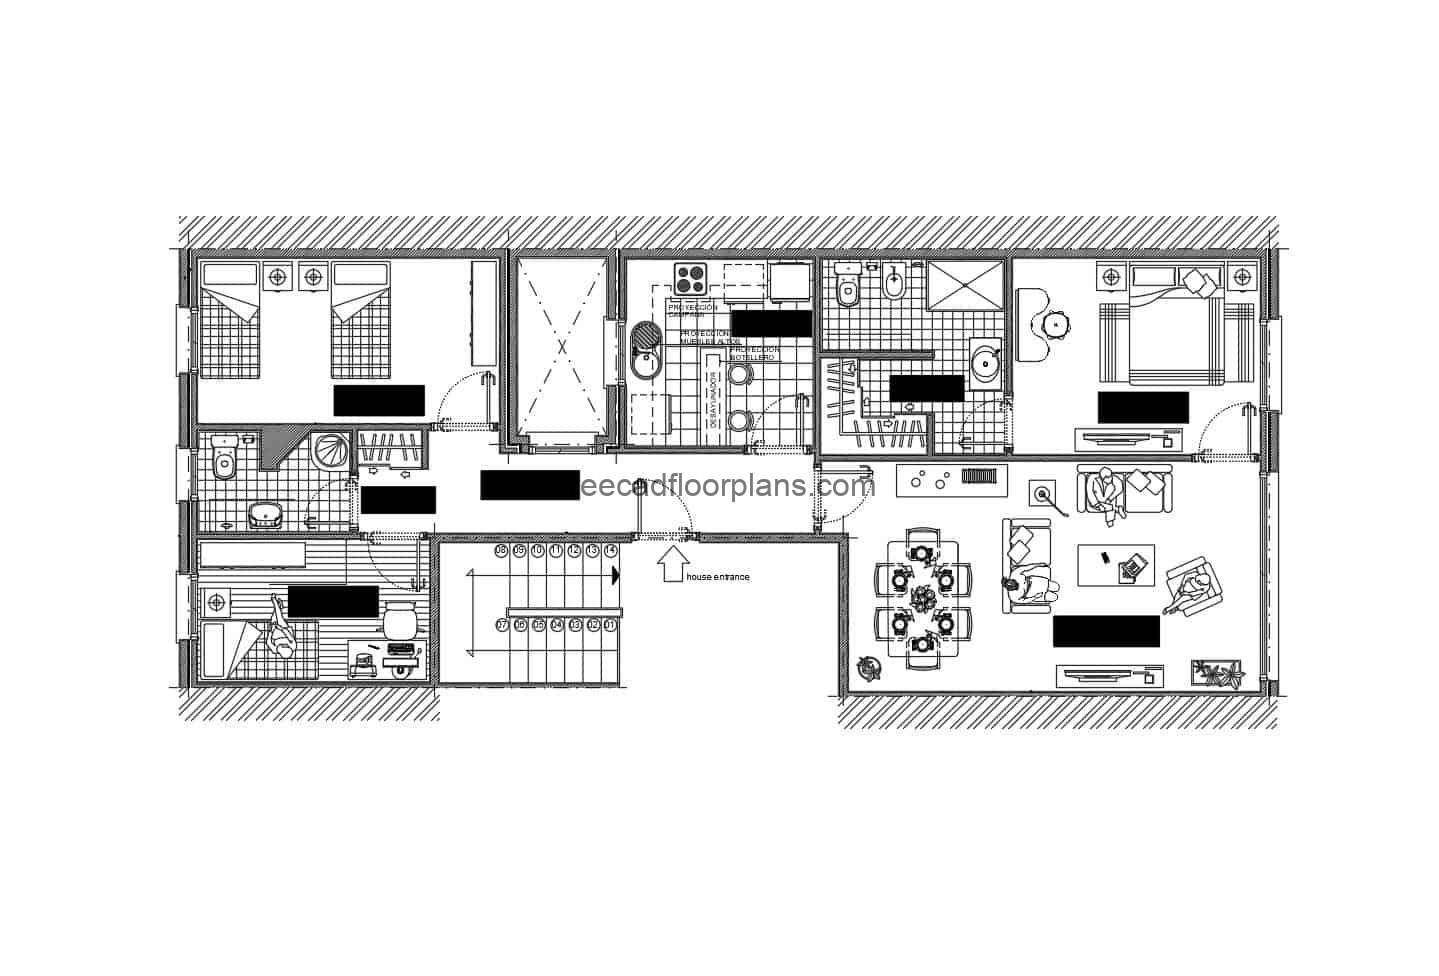 Simple residential block architectural design in autocad format, two rooms, living room, kitchen and dining room, architectural plan and dimensioned, architectural details